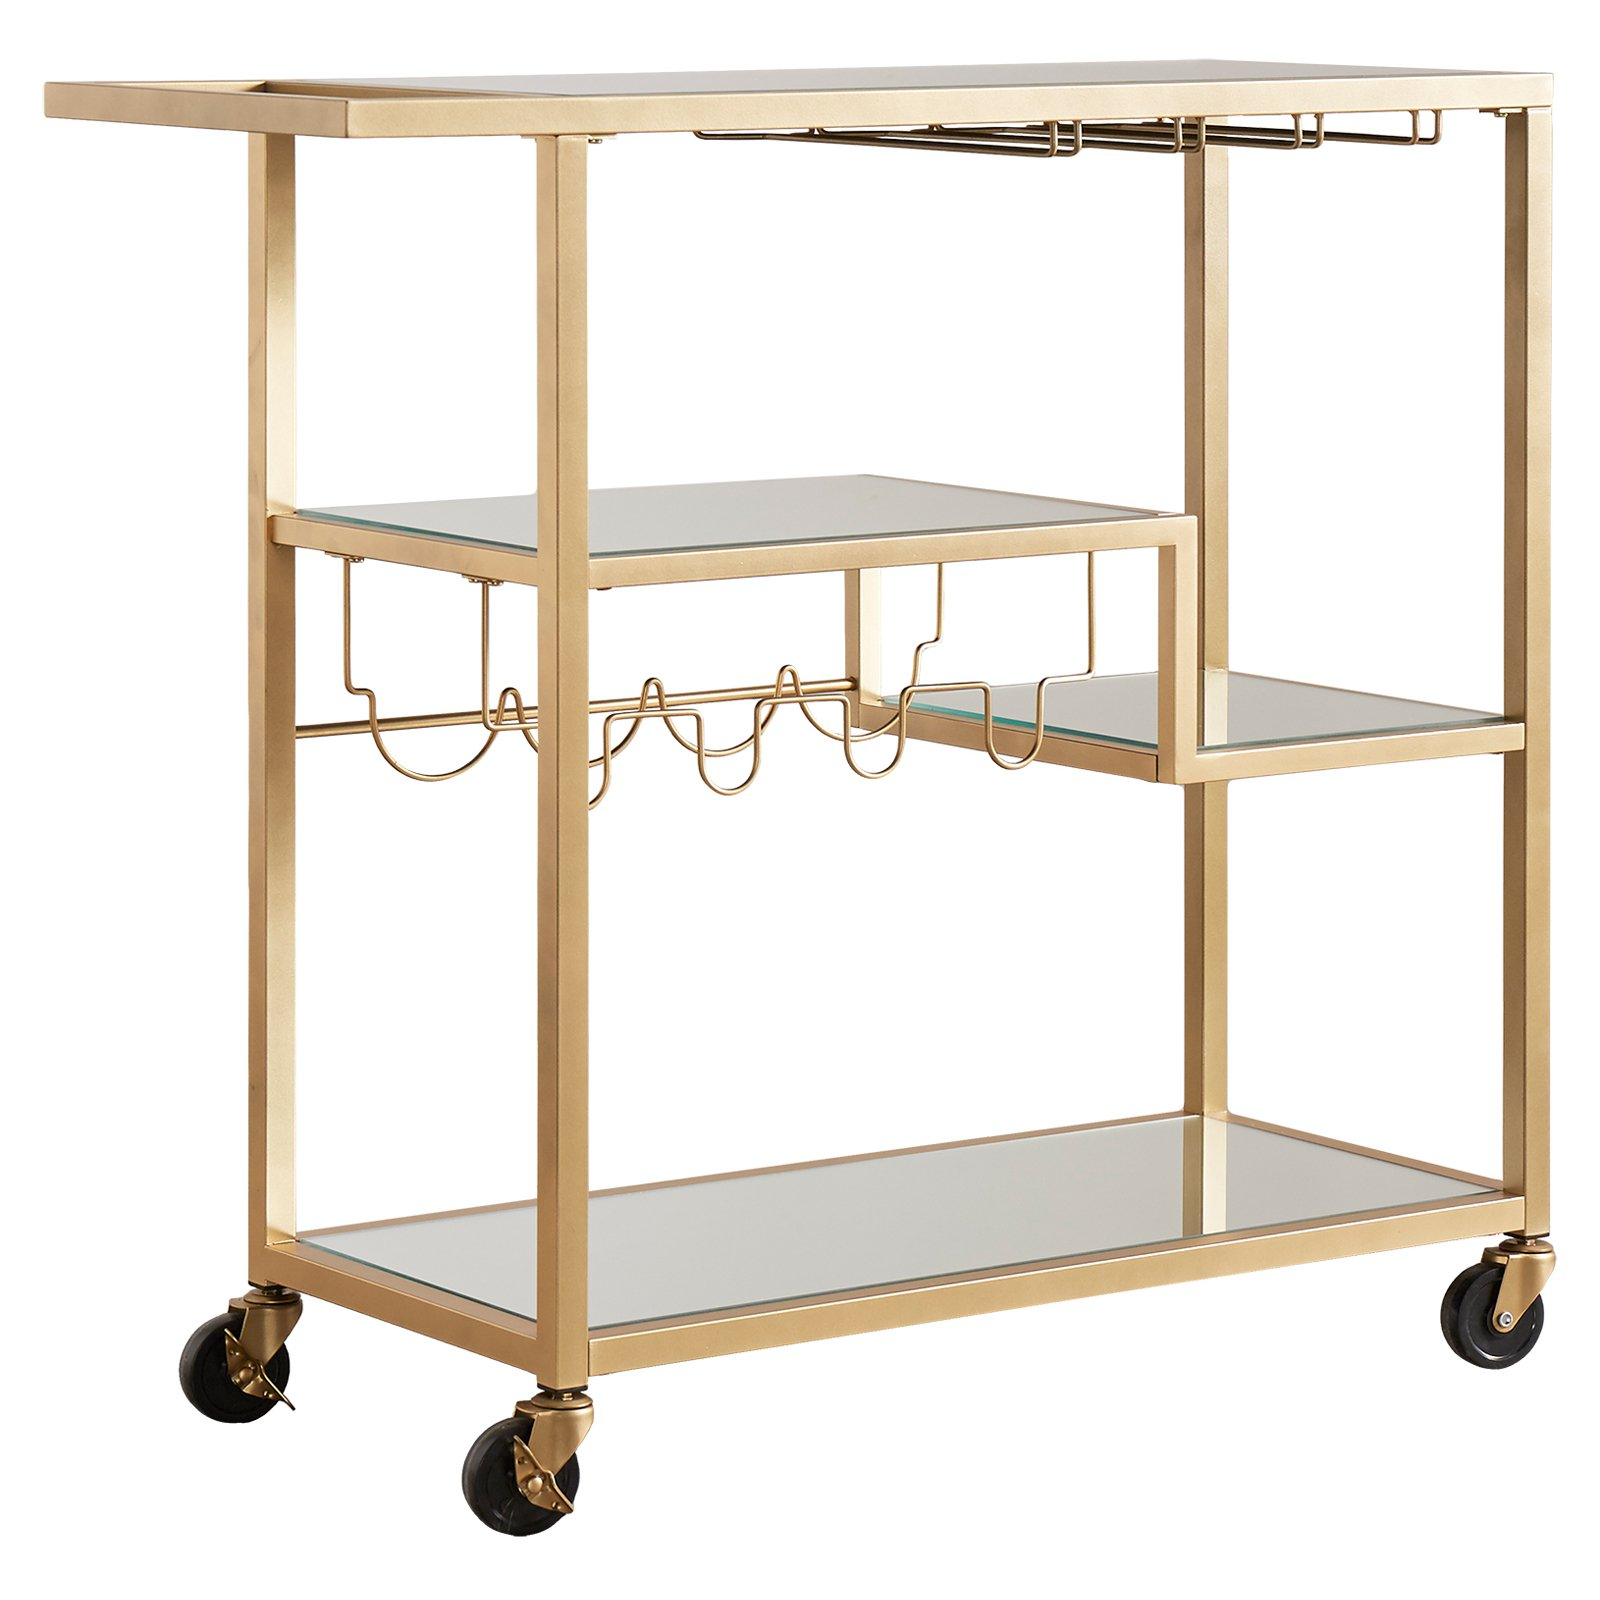 Genial Chelsea Lane Champagne Gold Mirror Glass Metal Bar Cart   Walmart.com